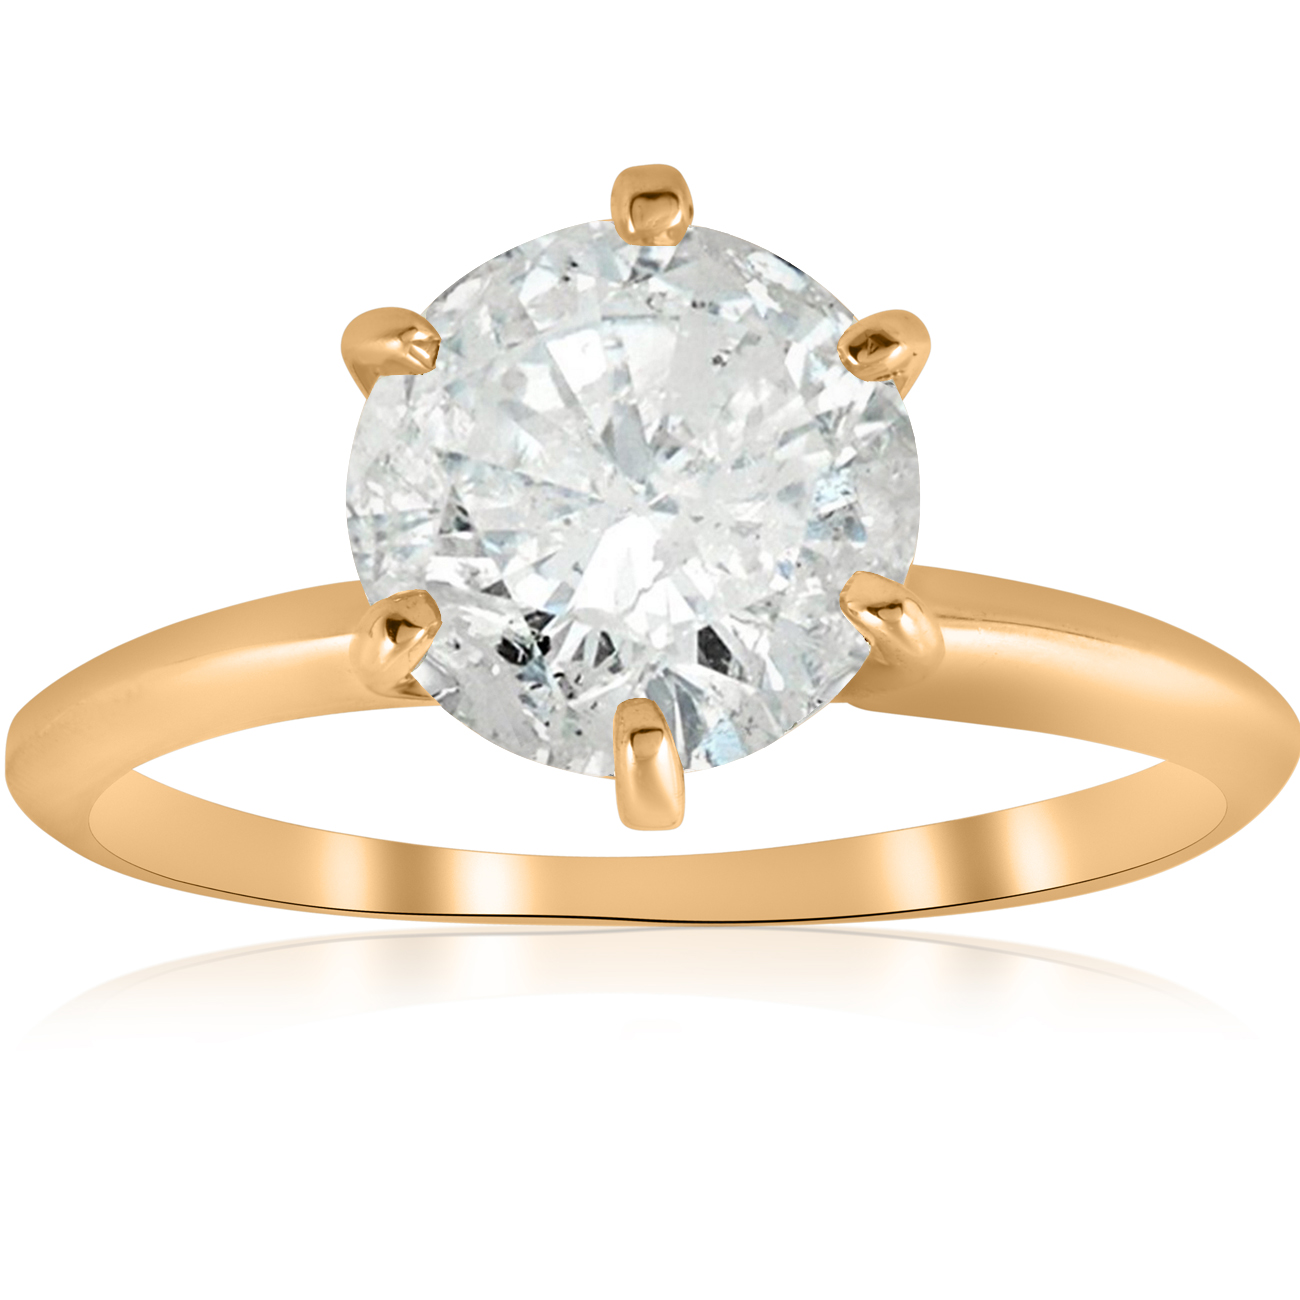 Large 2 1 2 ct Round Solitaire Diamond Engagement Ring 14k Yellow Gold Enhanced by Pompeii3